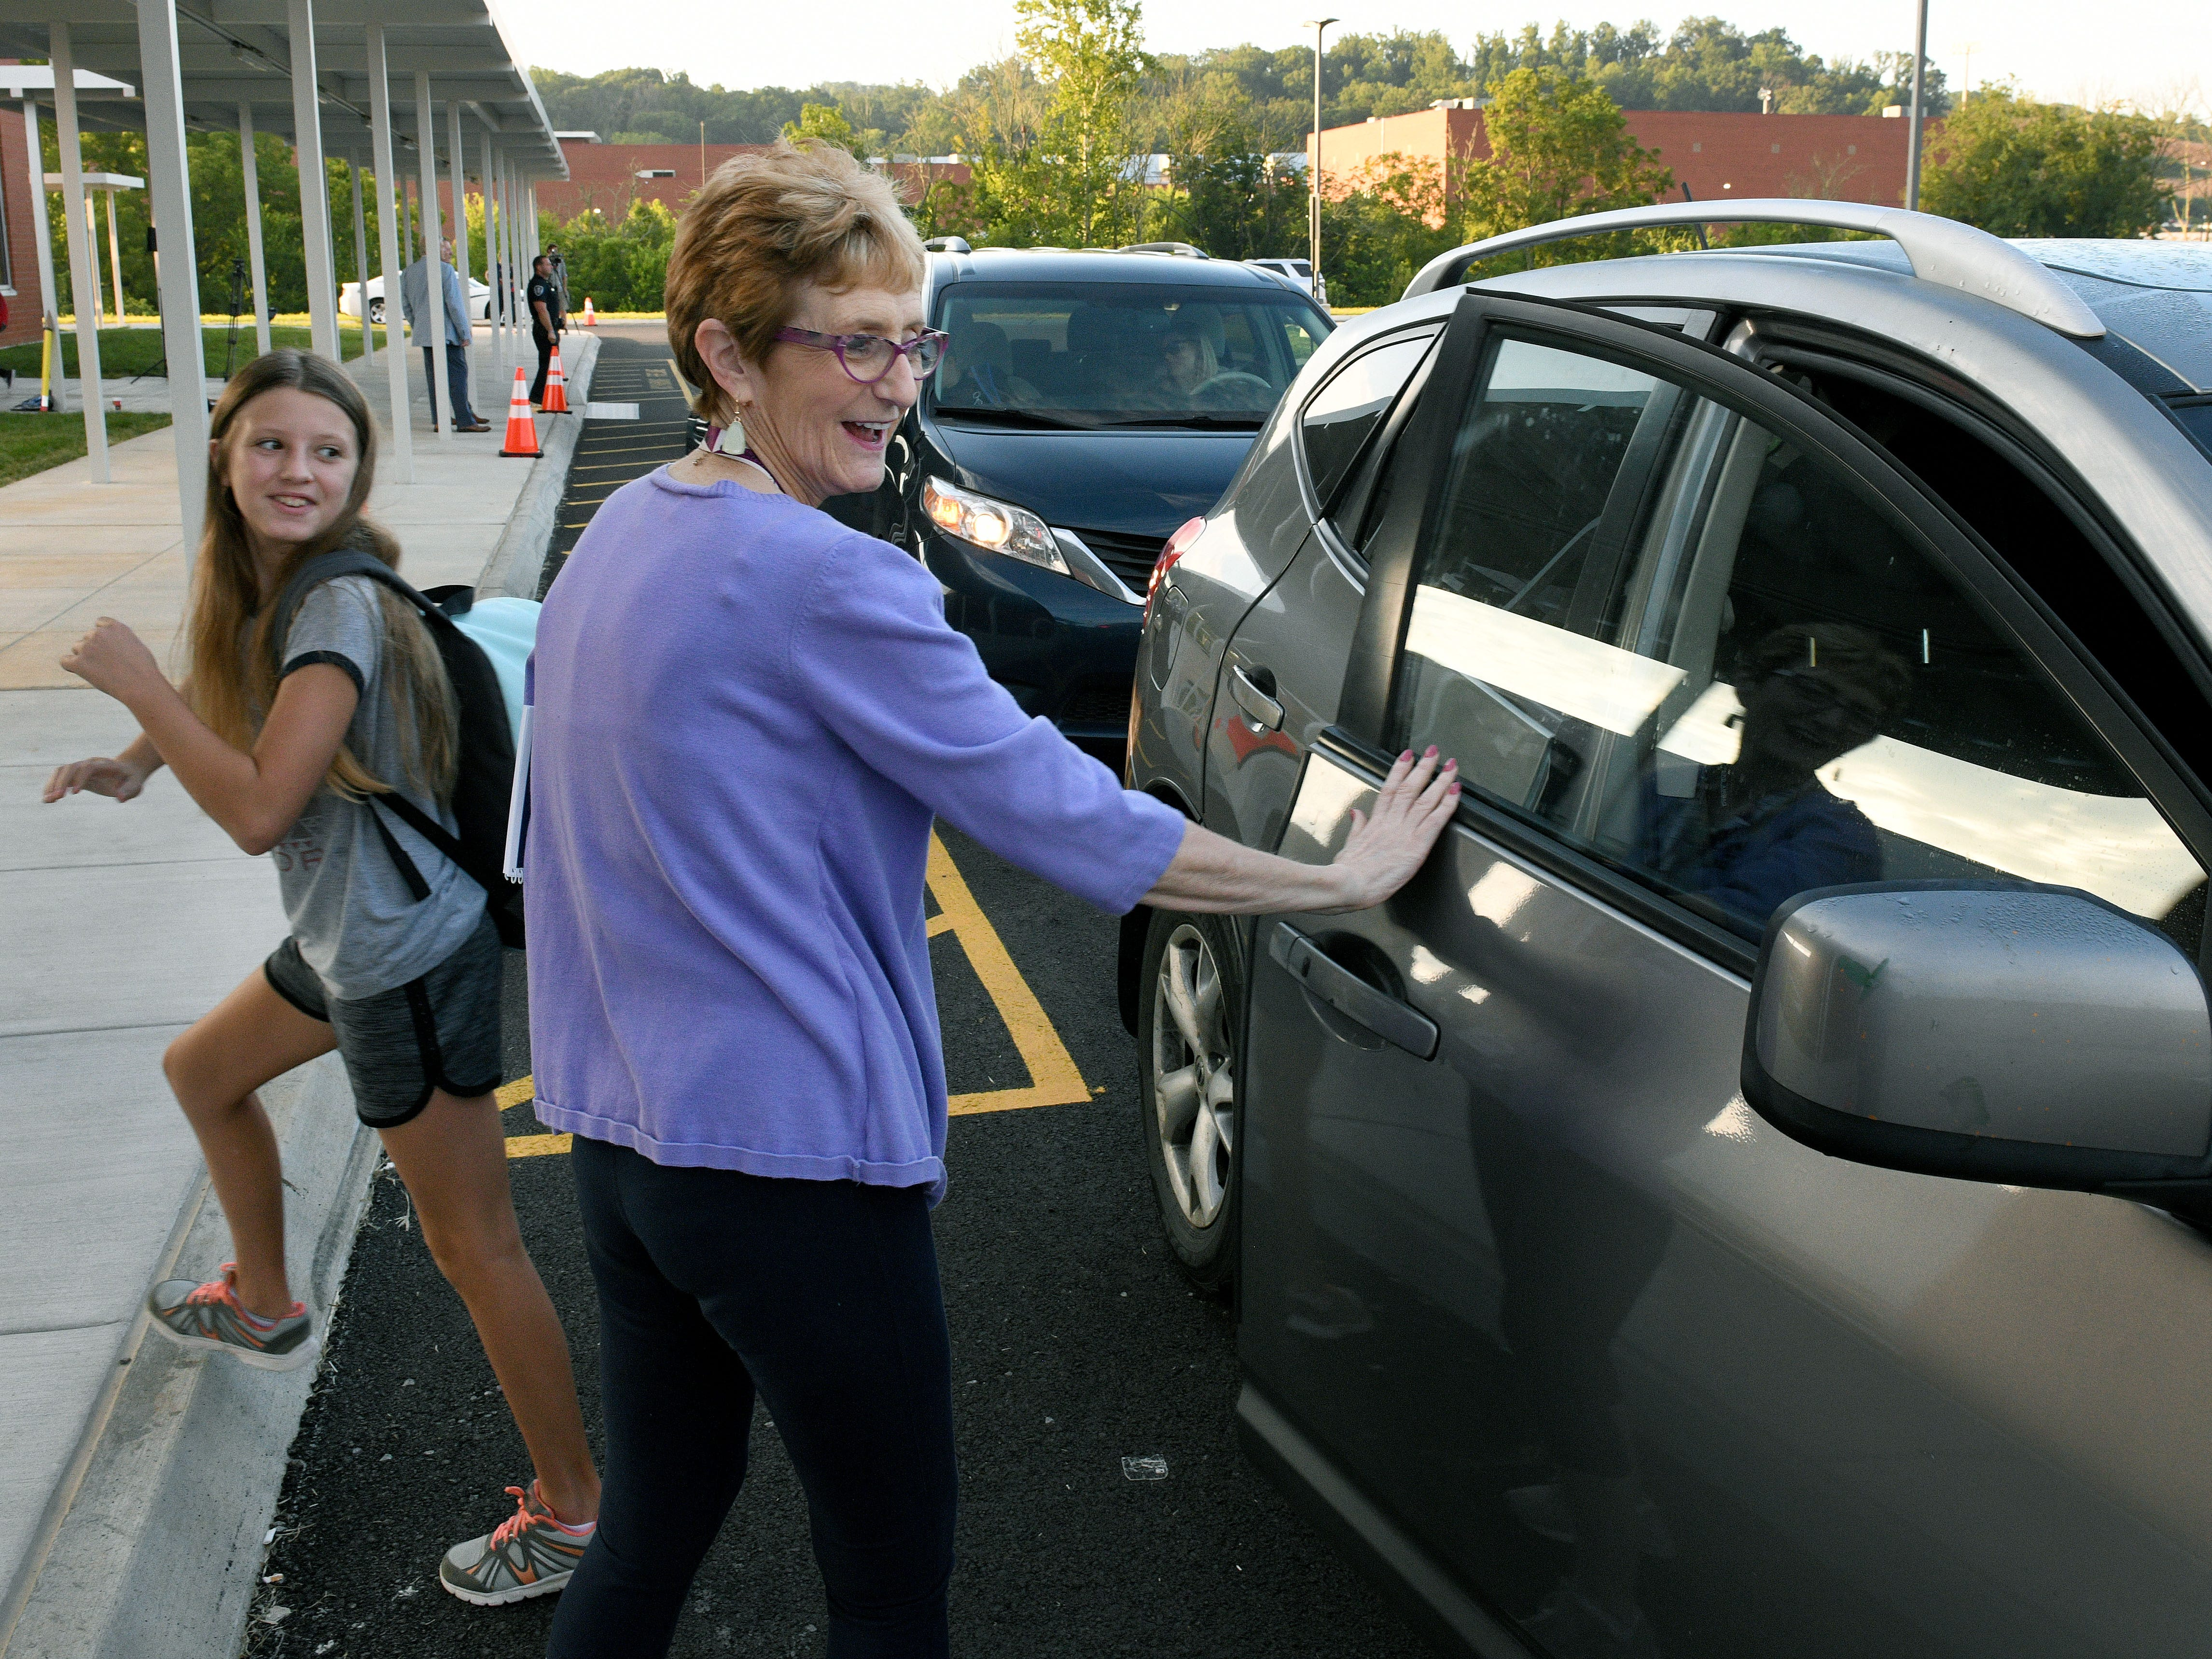 Evelyn Stuart greets student car riders for the first day of school at Hardin Valley Middle School Wednesday, August 8, 2018. Principal Cory Smith directed teachers and students to a smooth opening for the new school.